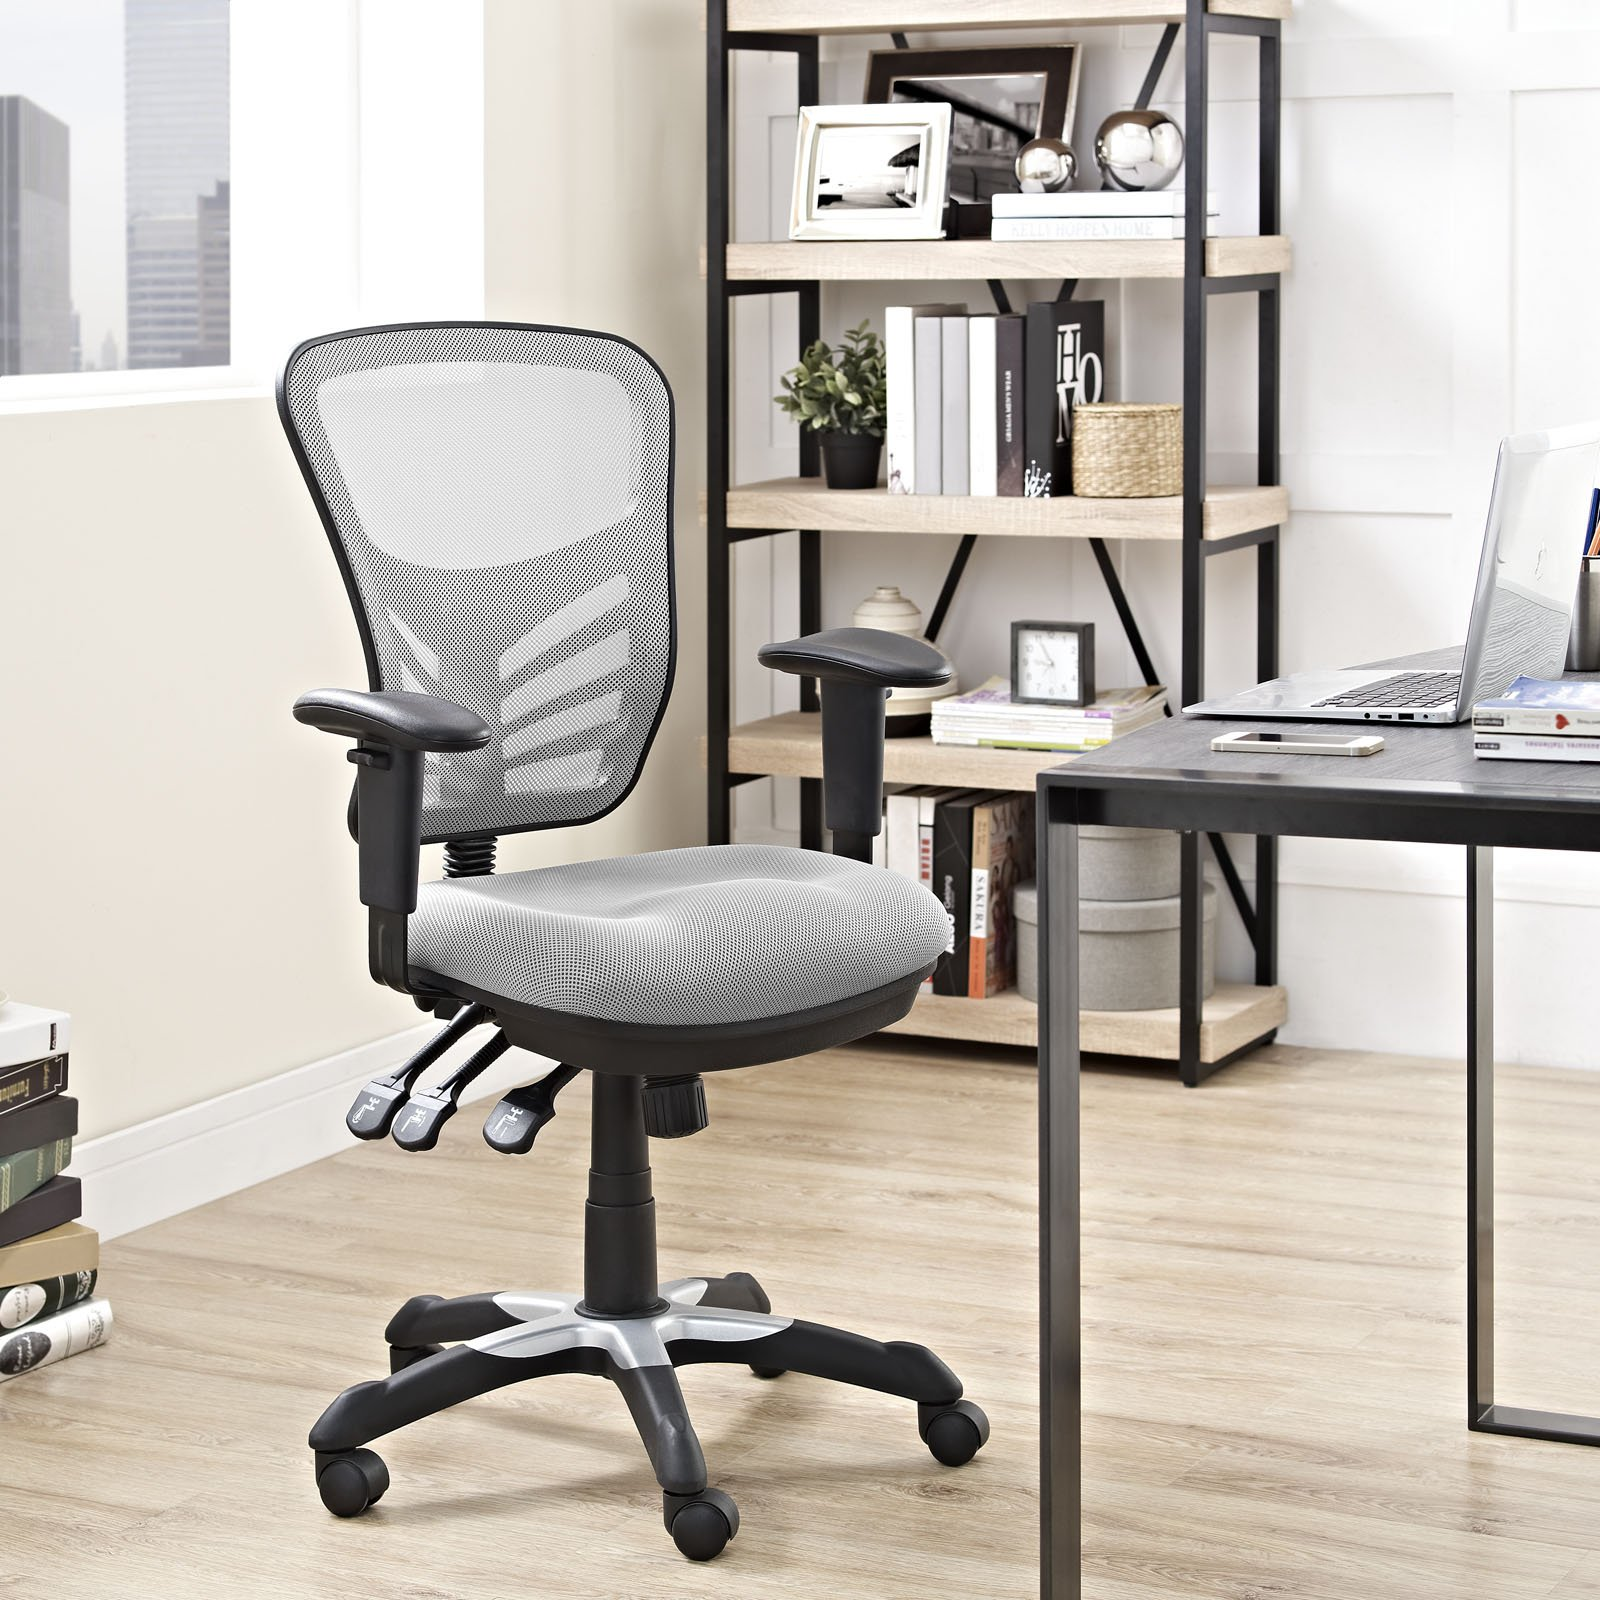 Modway Articulate Ergonomic Mesh Office Chair in Gray by Modway (Image #6)